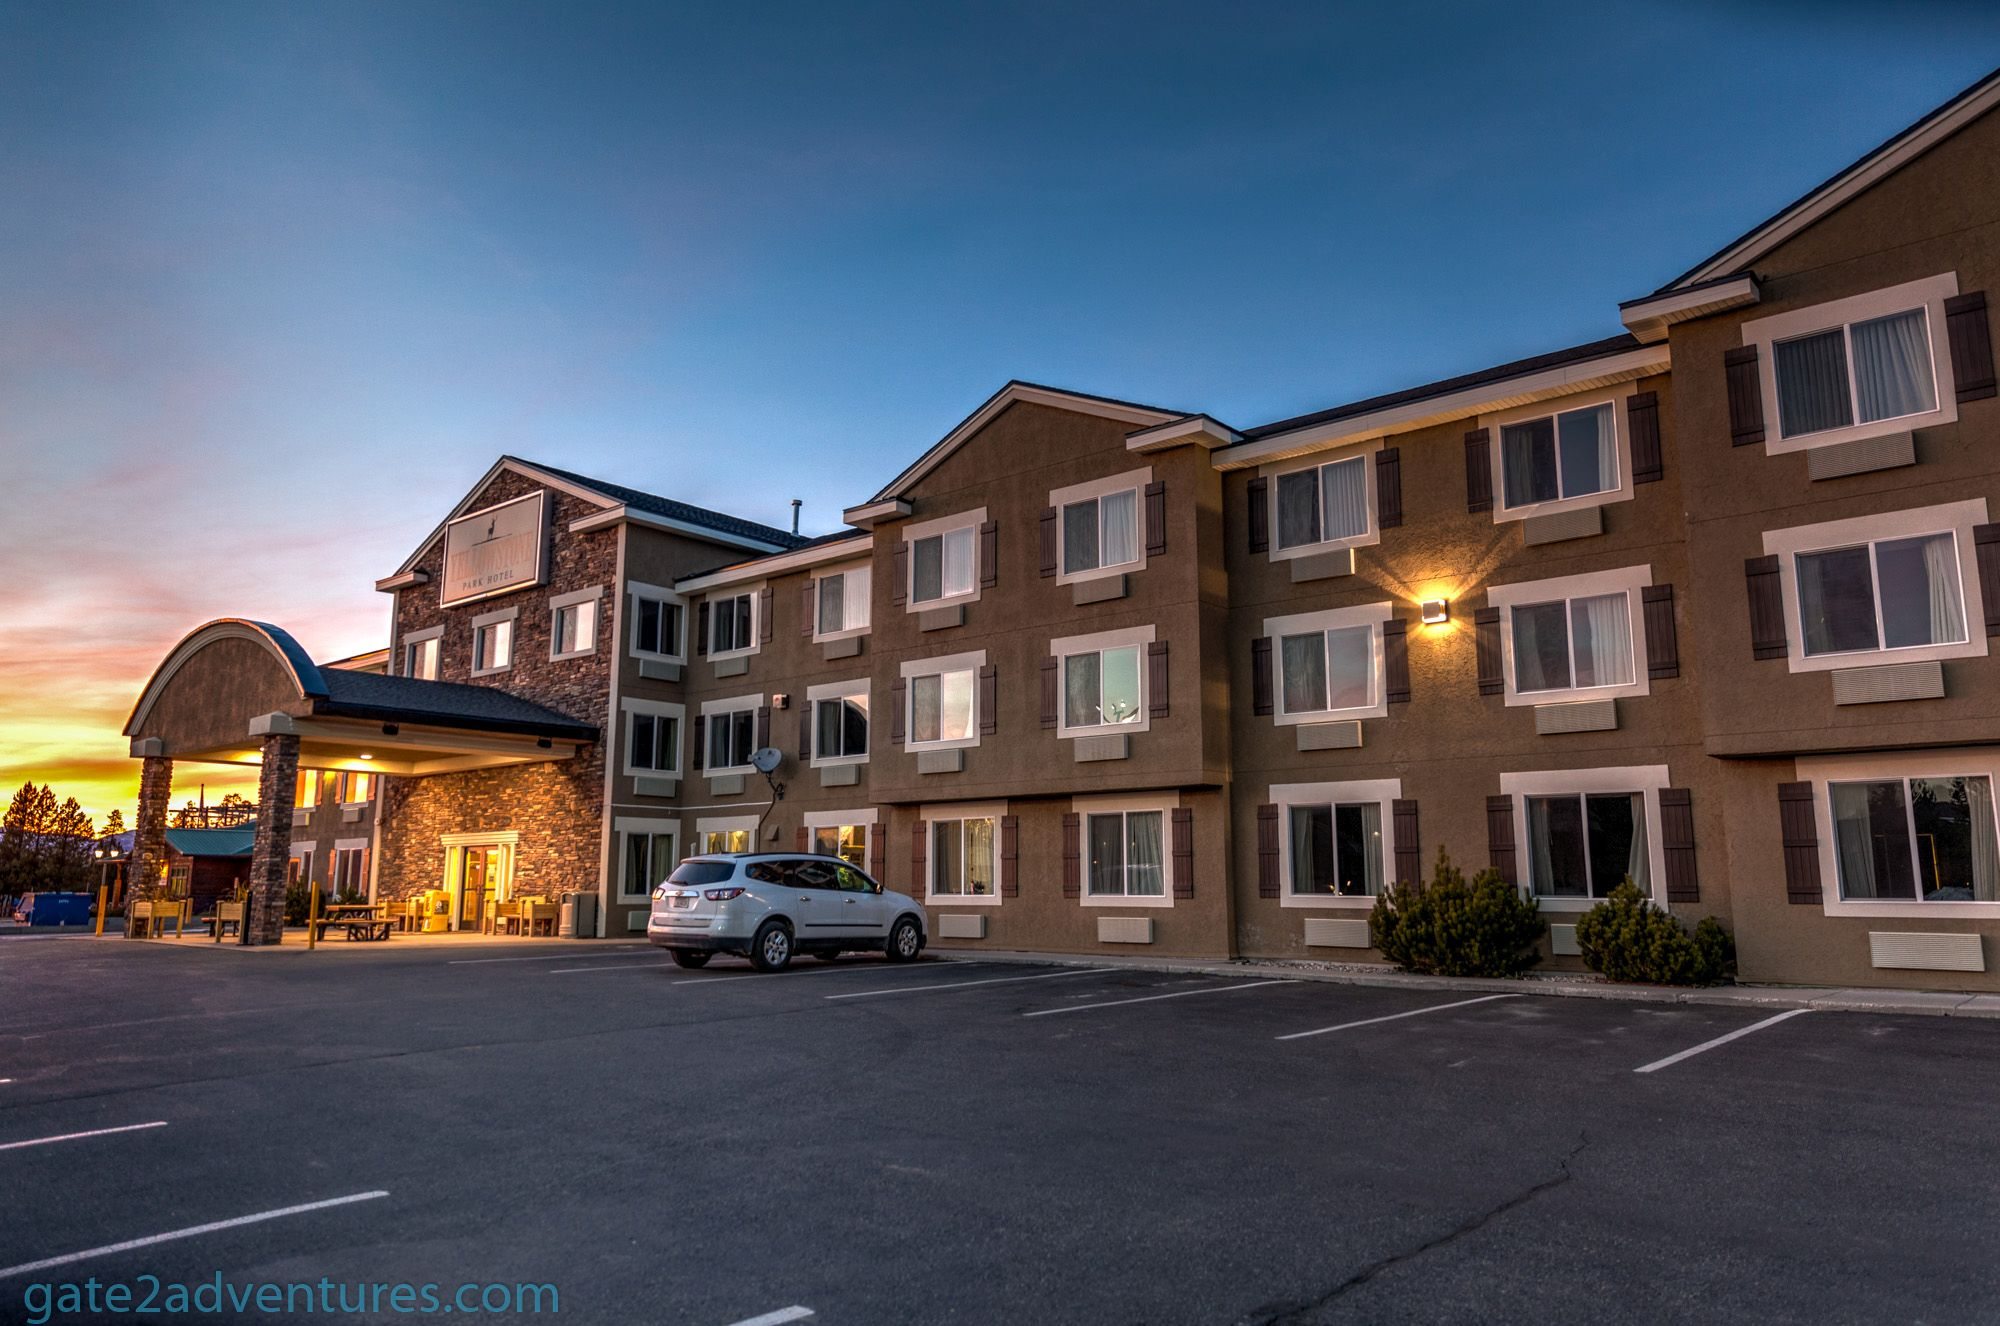 Hotel Review: Yellowstone Park Hotel